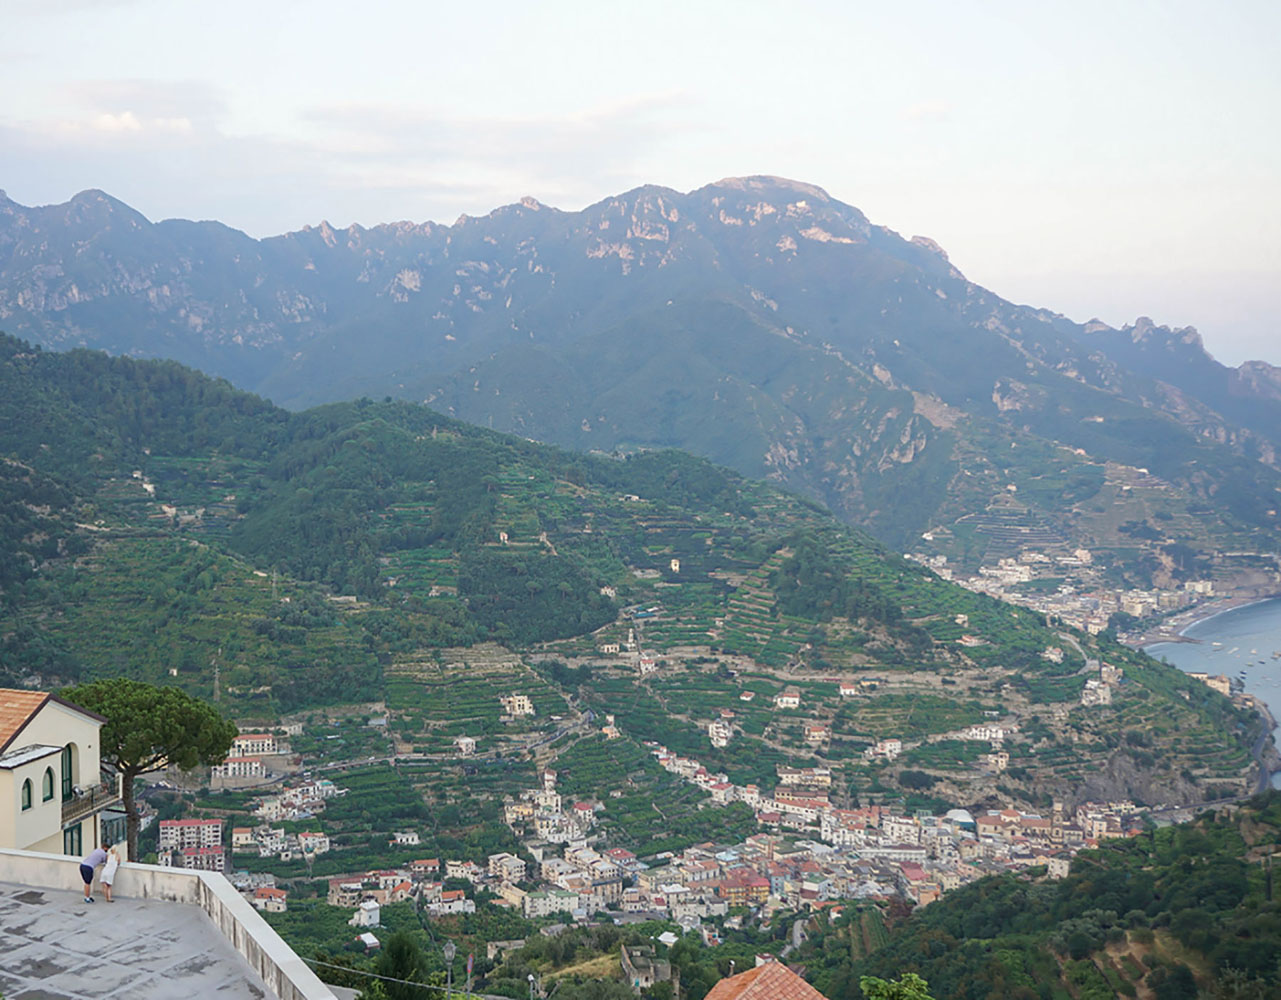 The peaceful town of Ravello is a hidden gem in Italy.